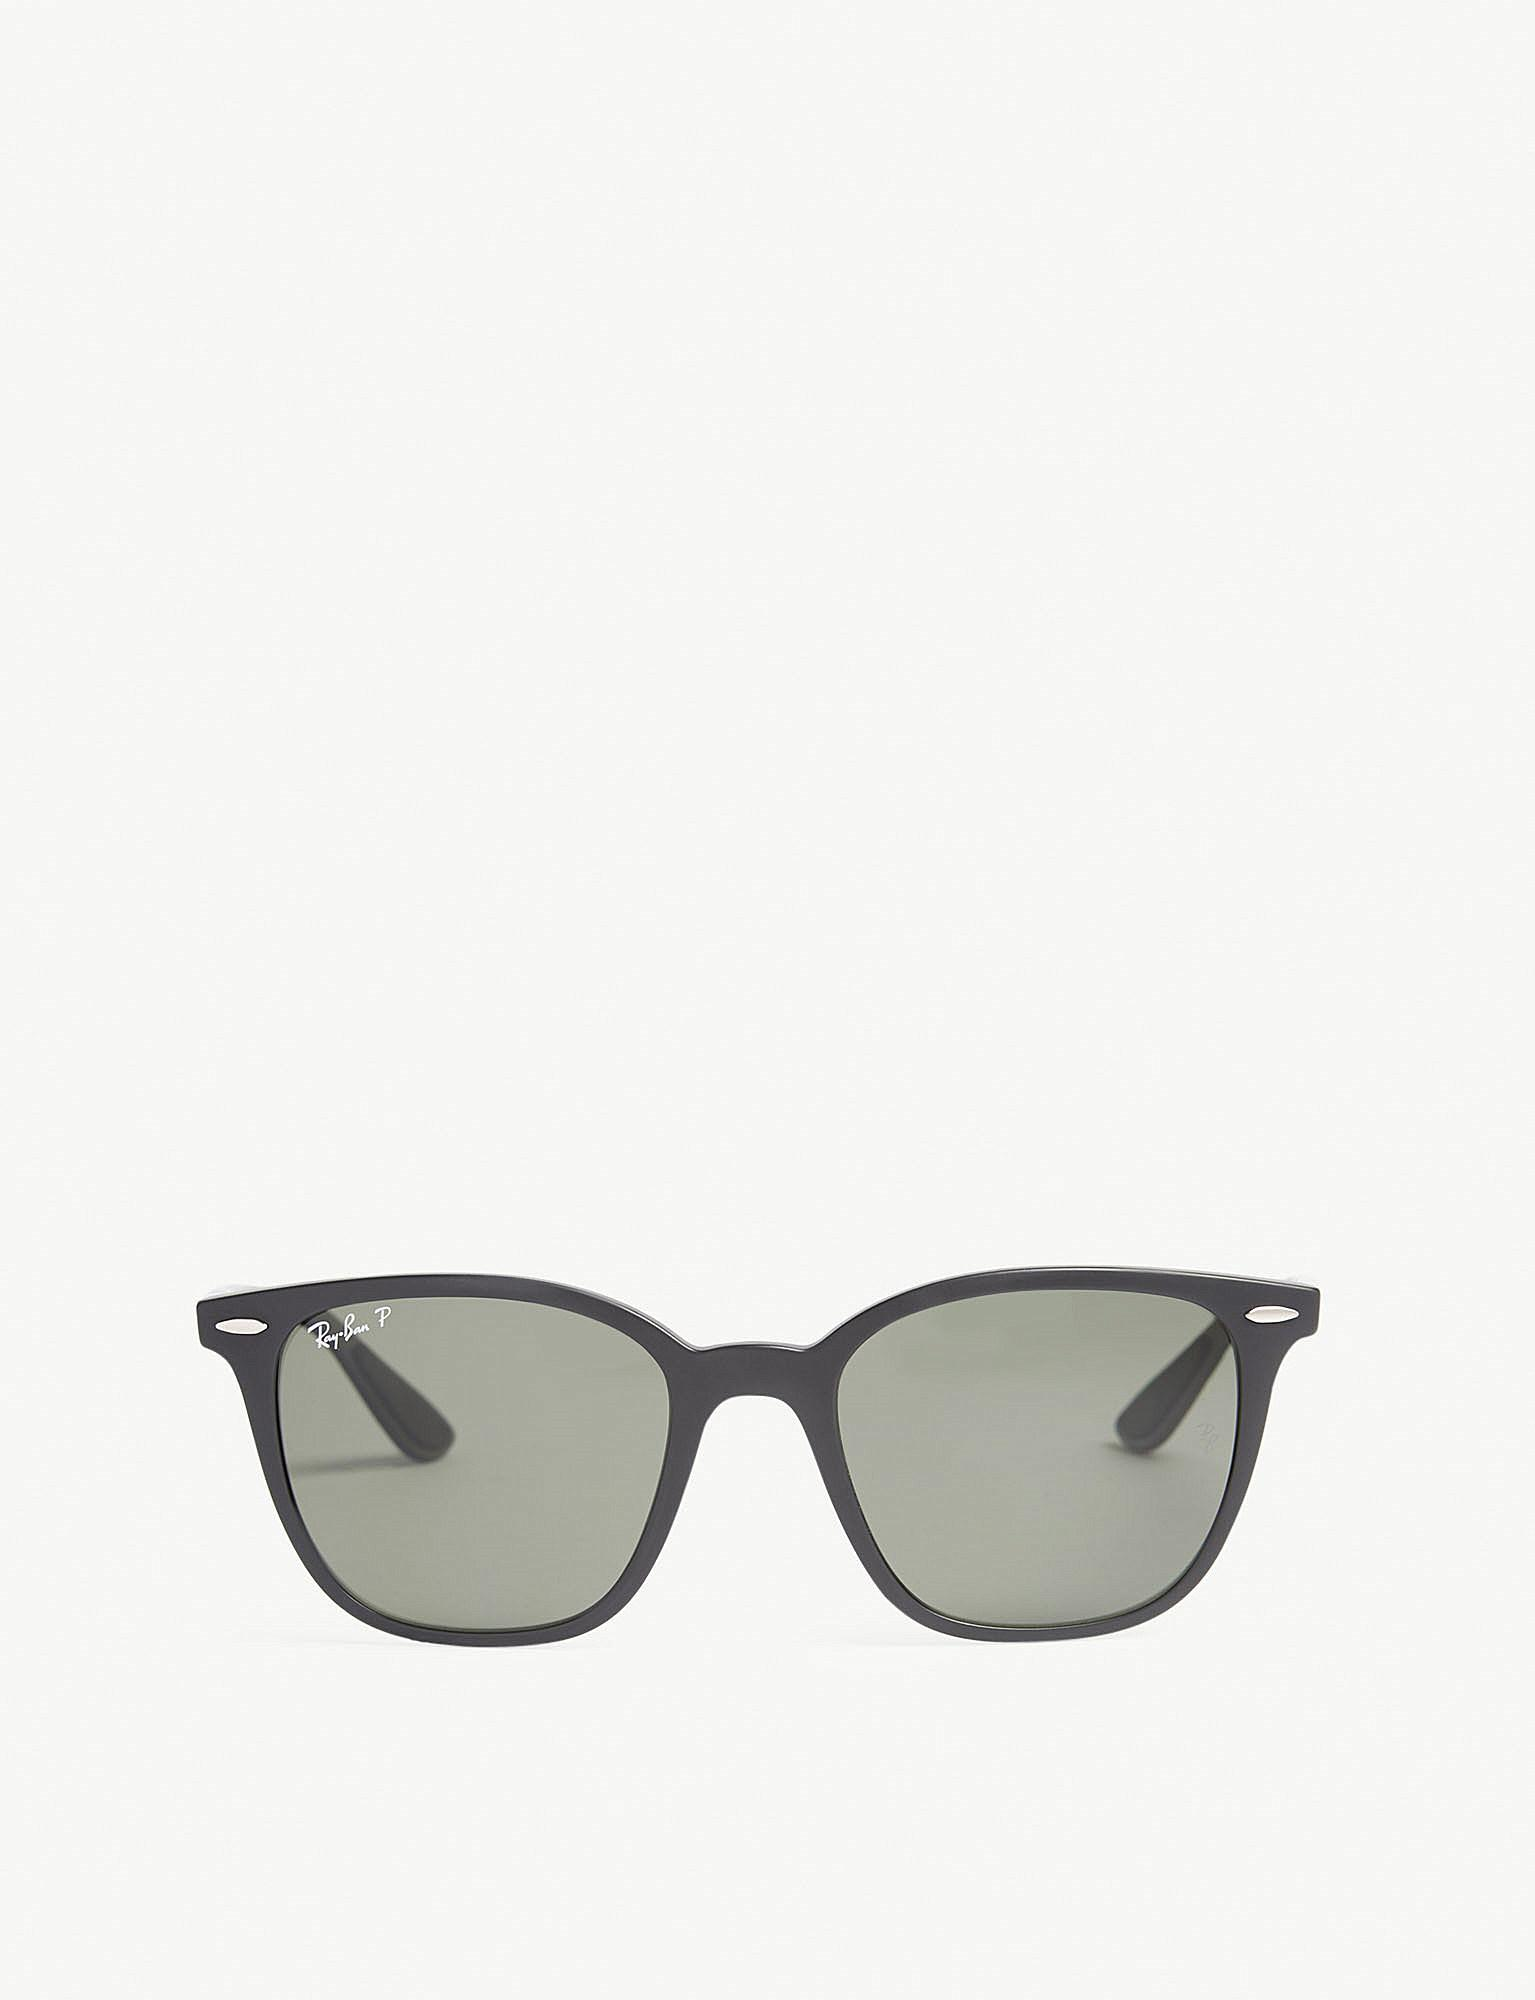 087586bf5cf Ray-Ban Rb4297 Square-frame Sunglasses in Black - Lyst